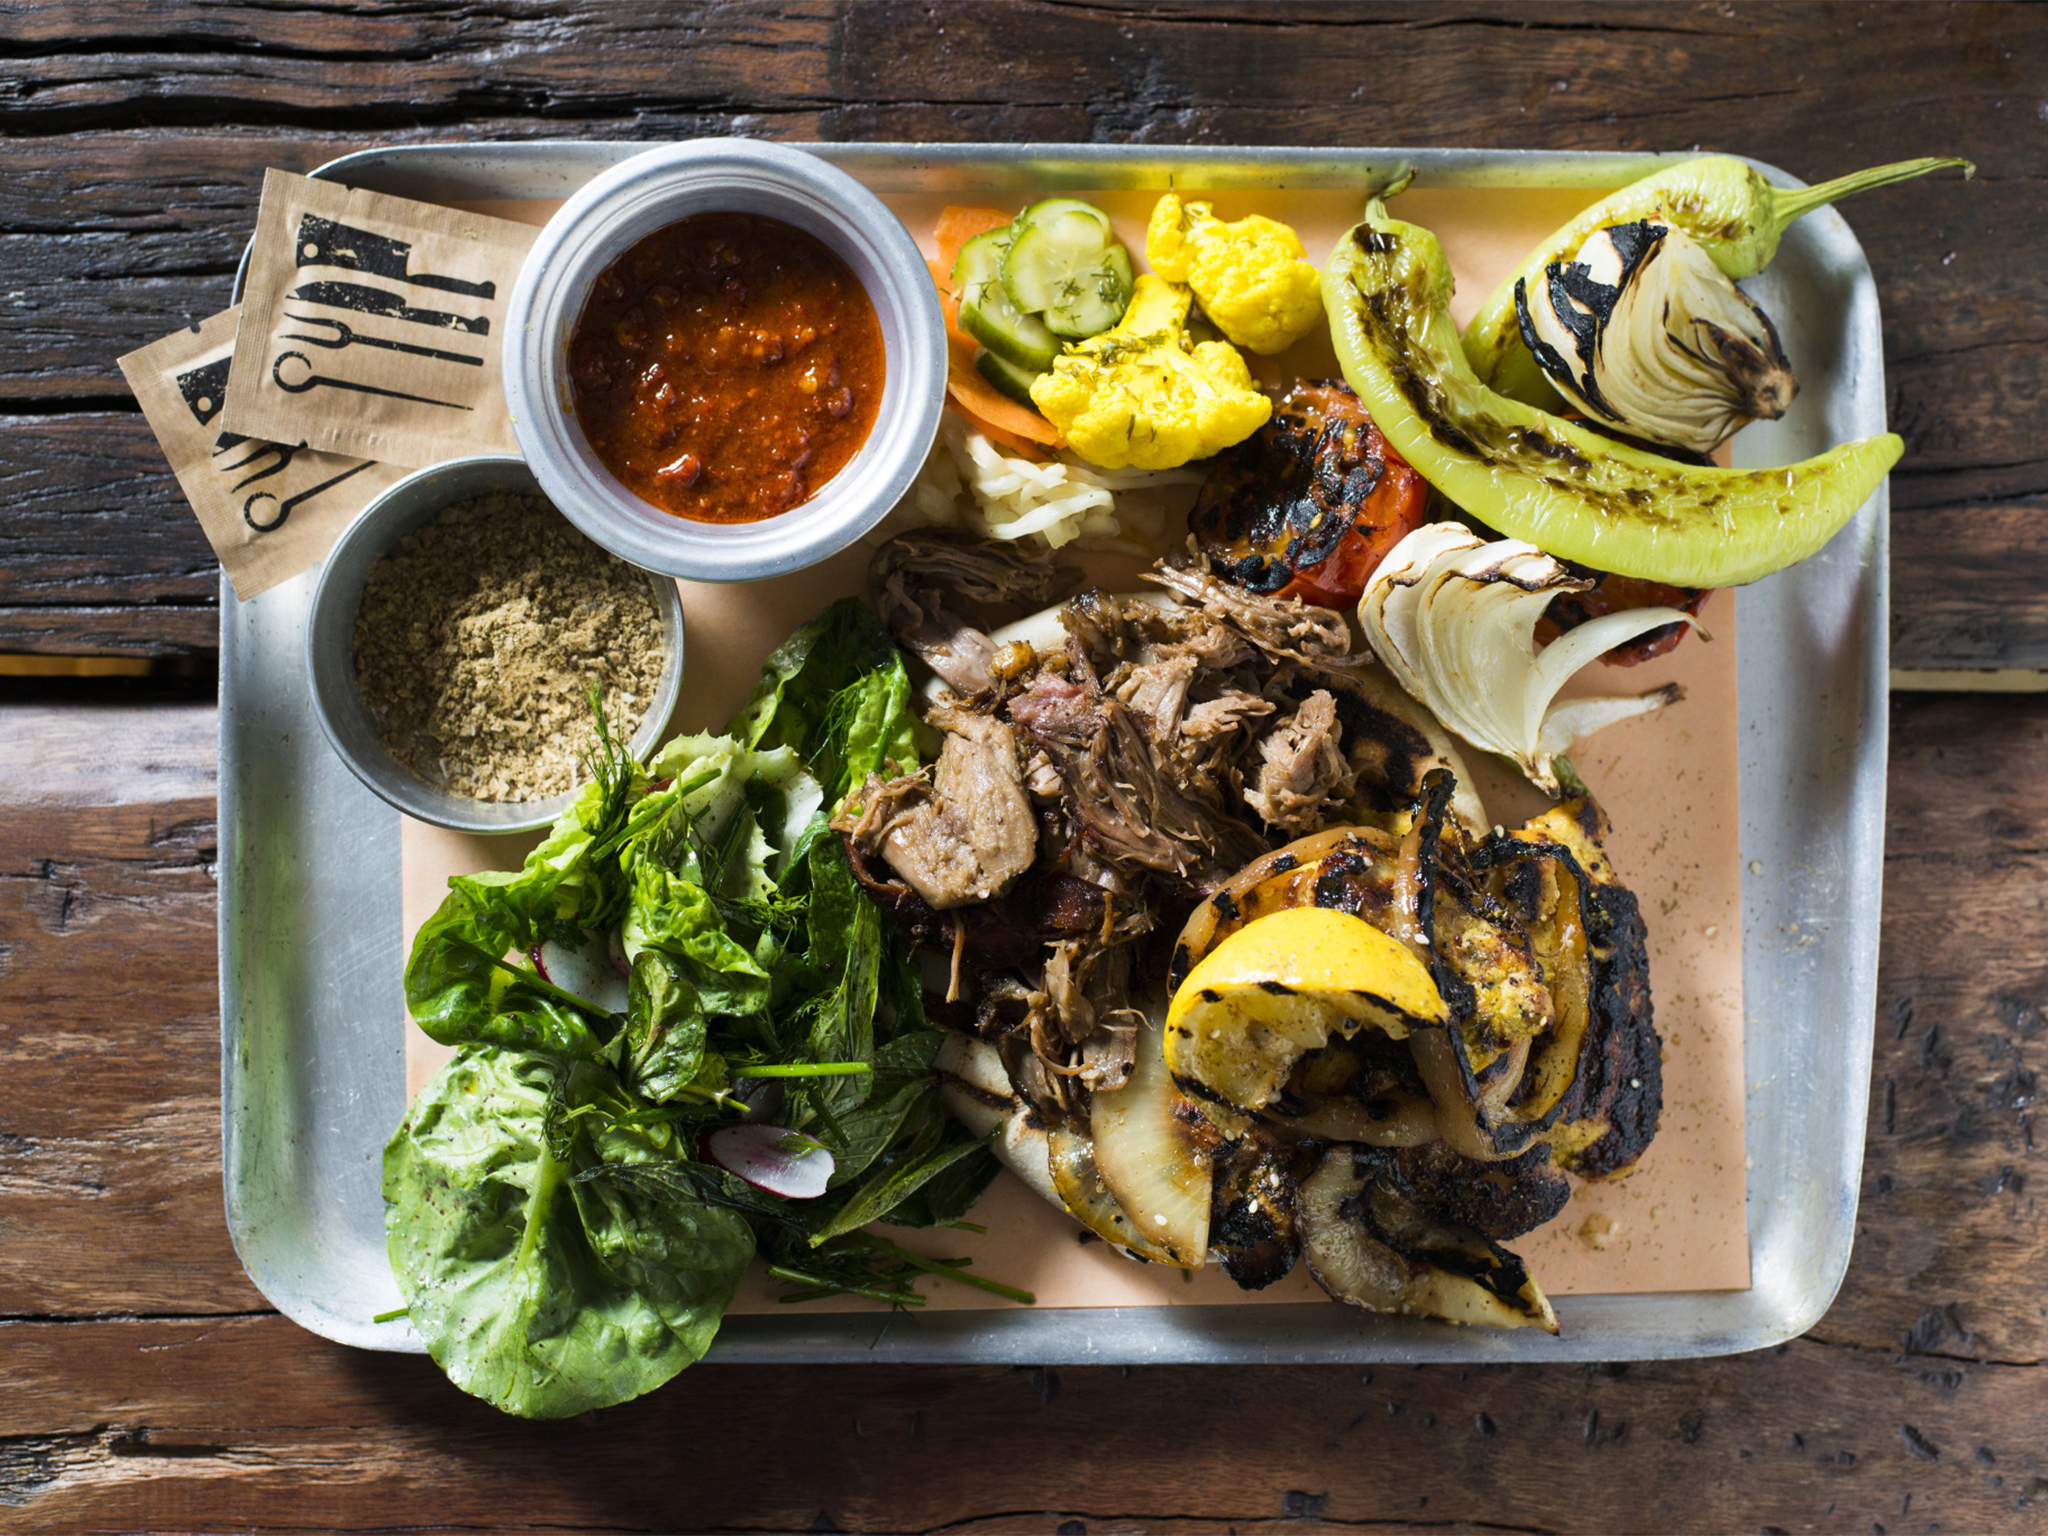 Berber & Q grilled meat